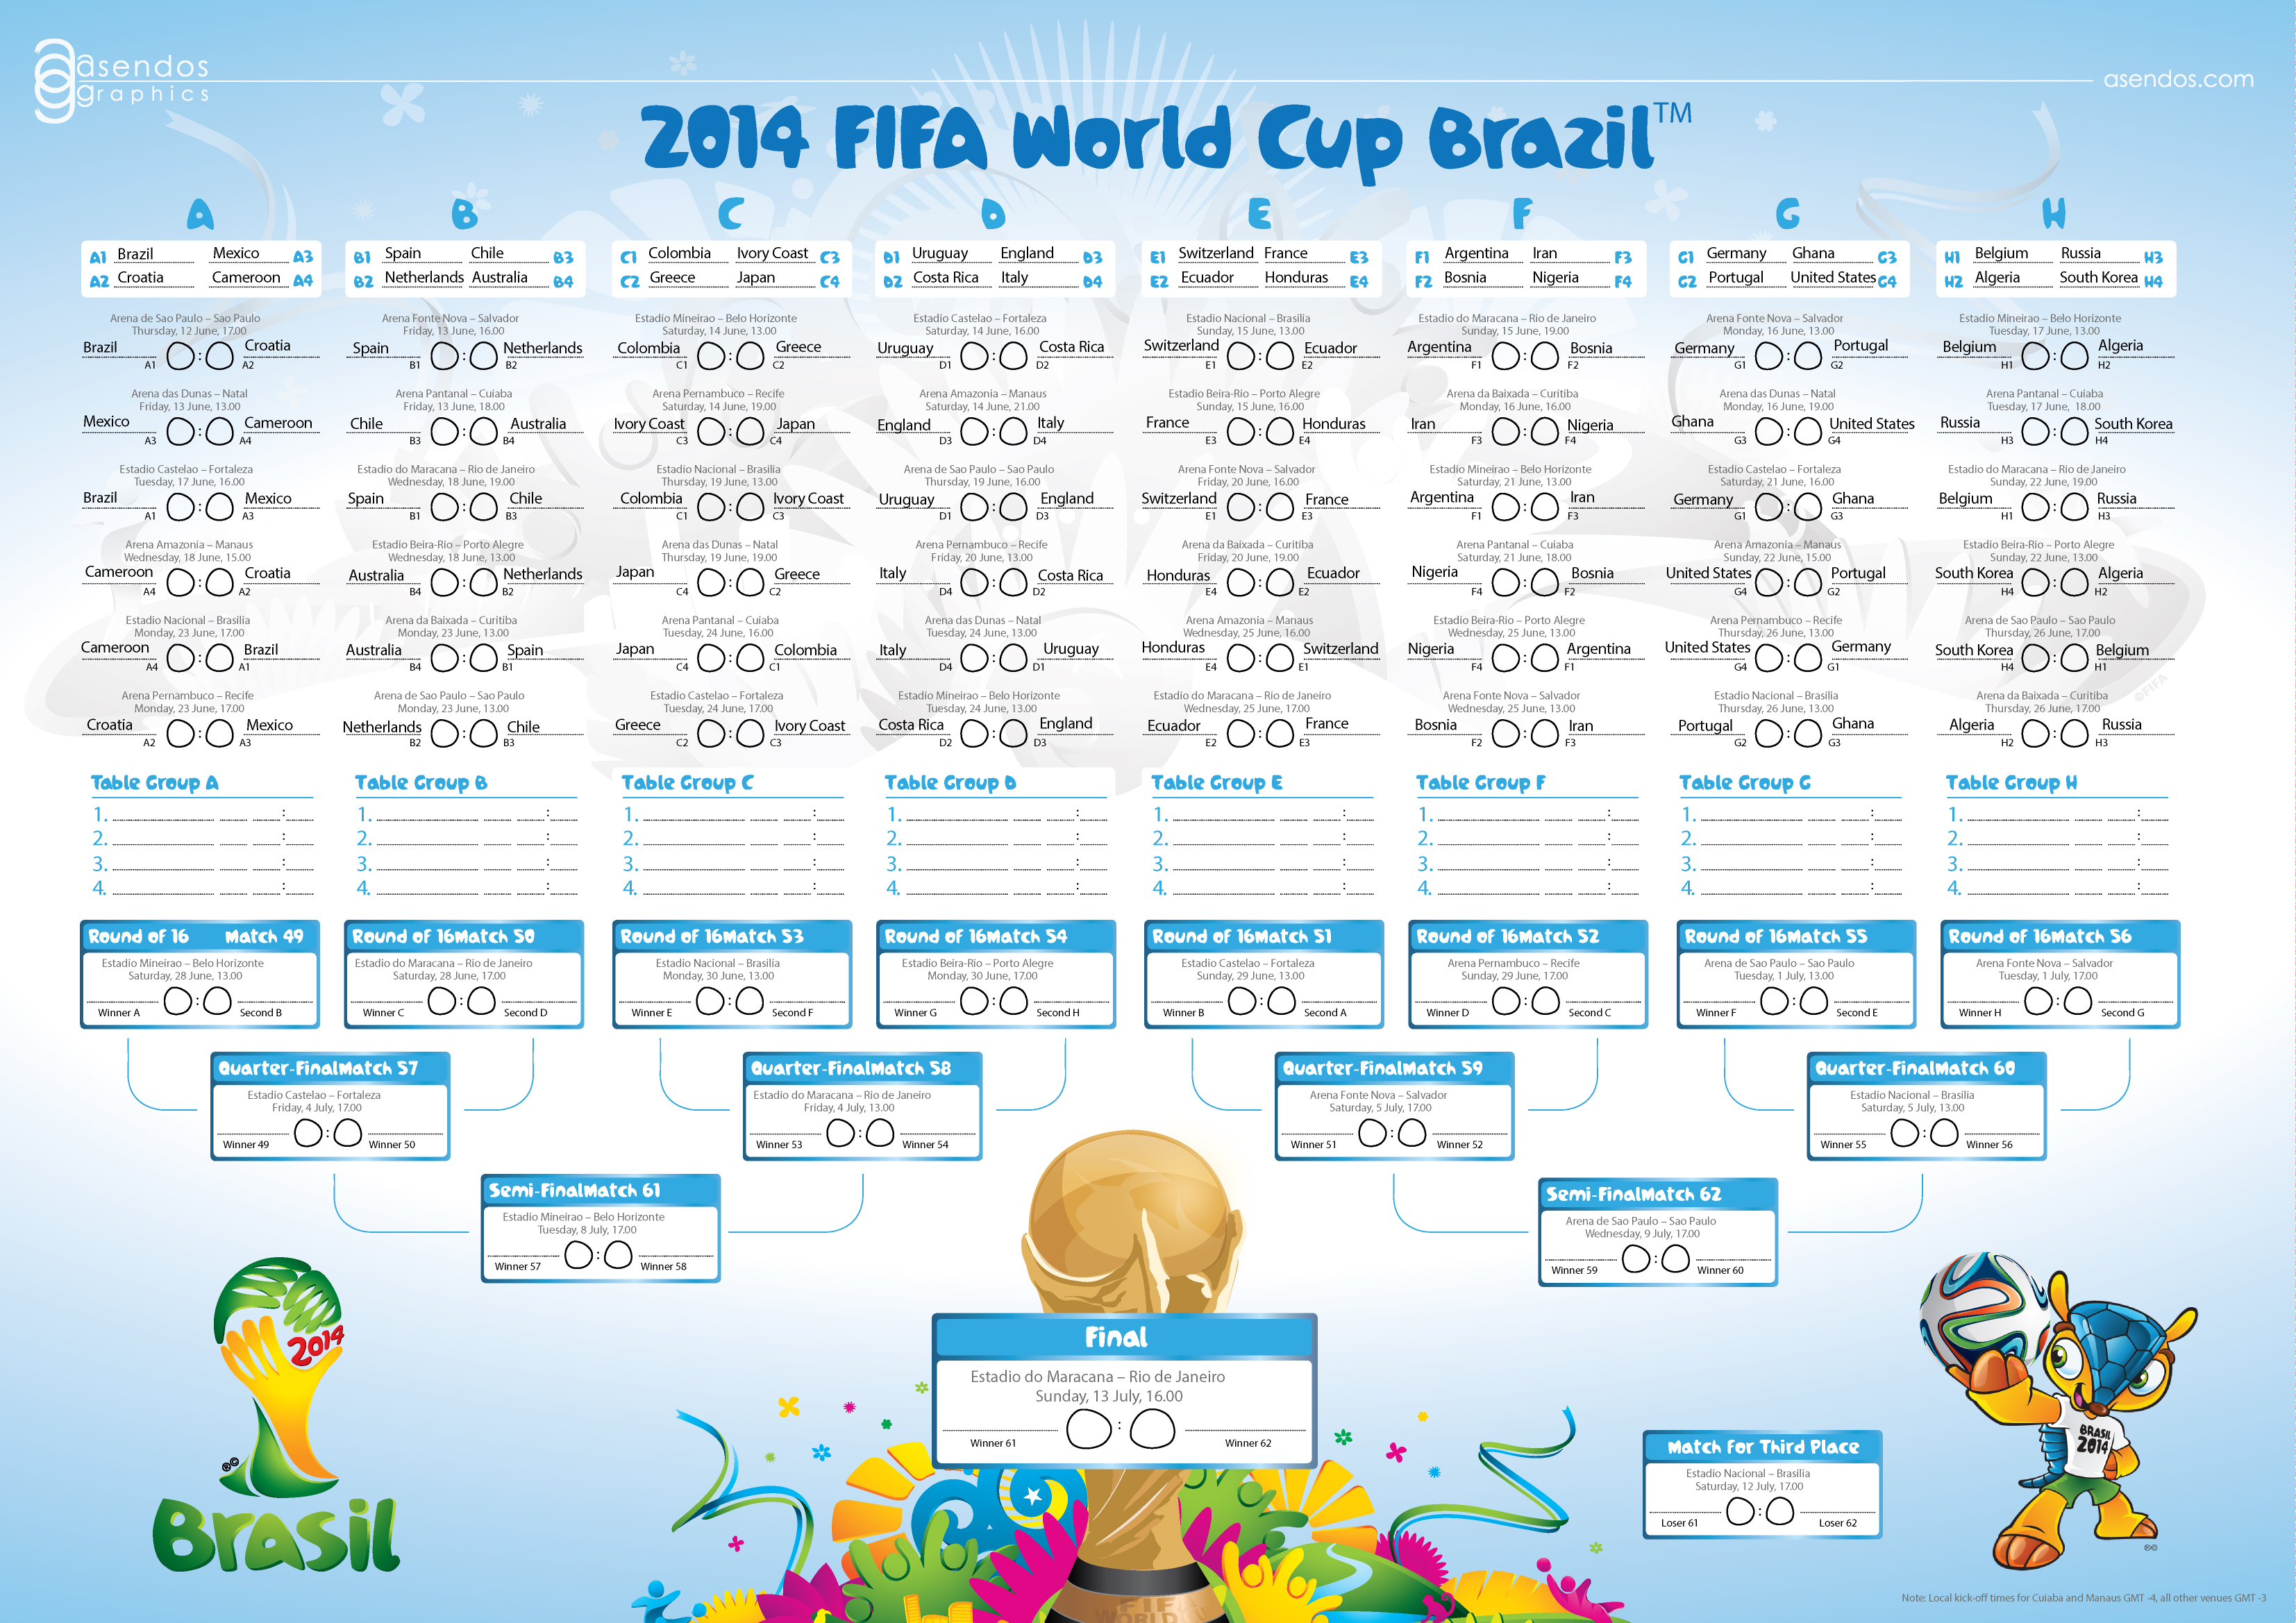 2014 Fifa World Cup Brazil Fixtures by asendos on DeviantArt